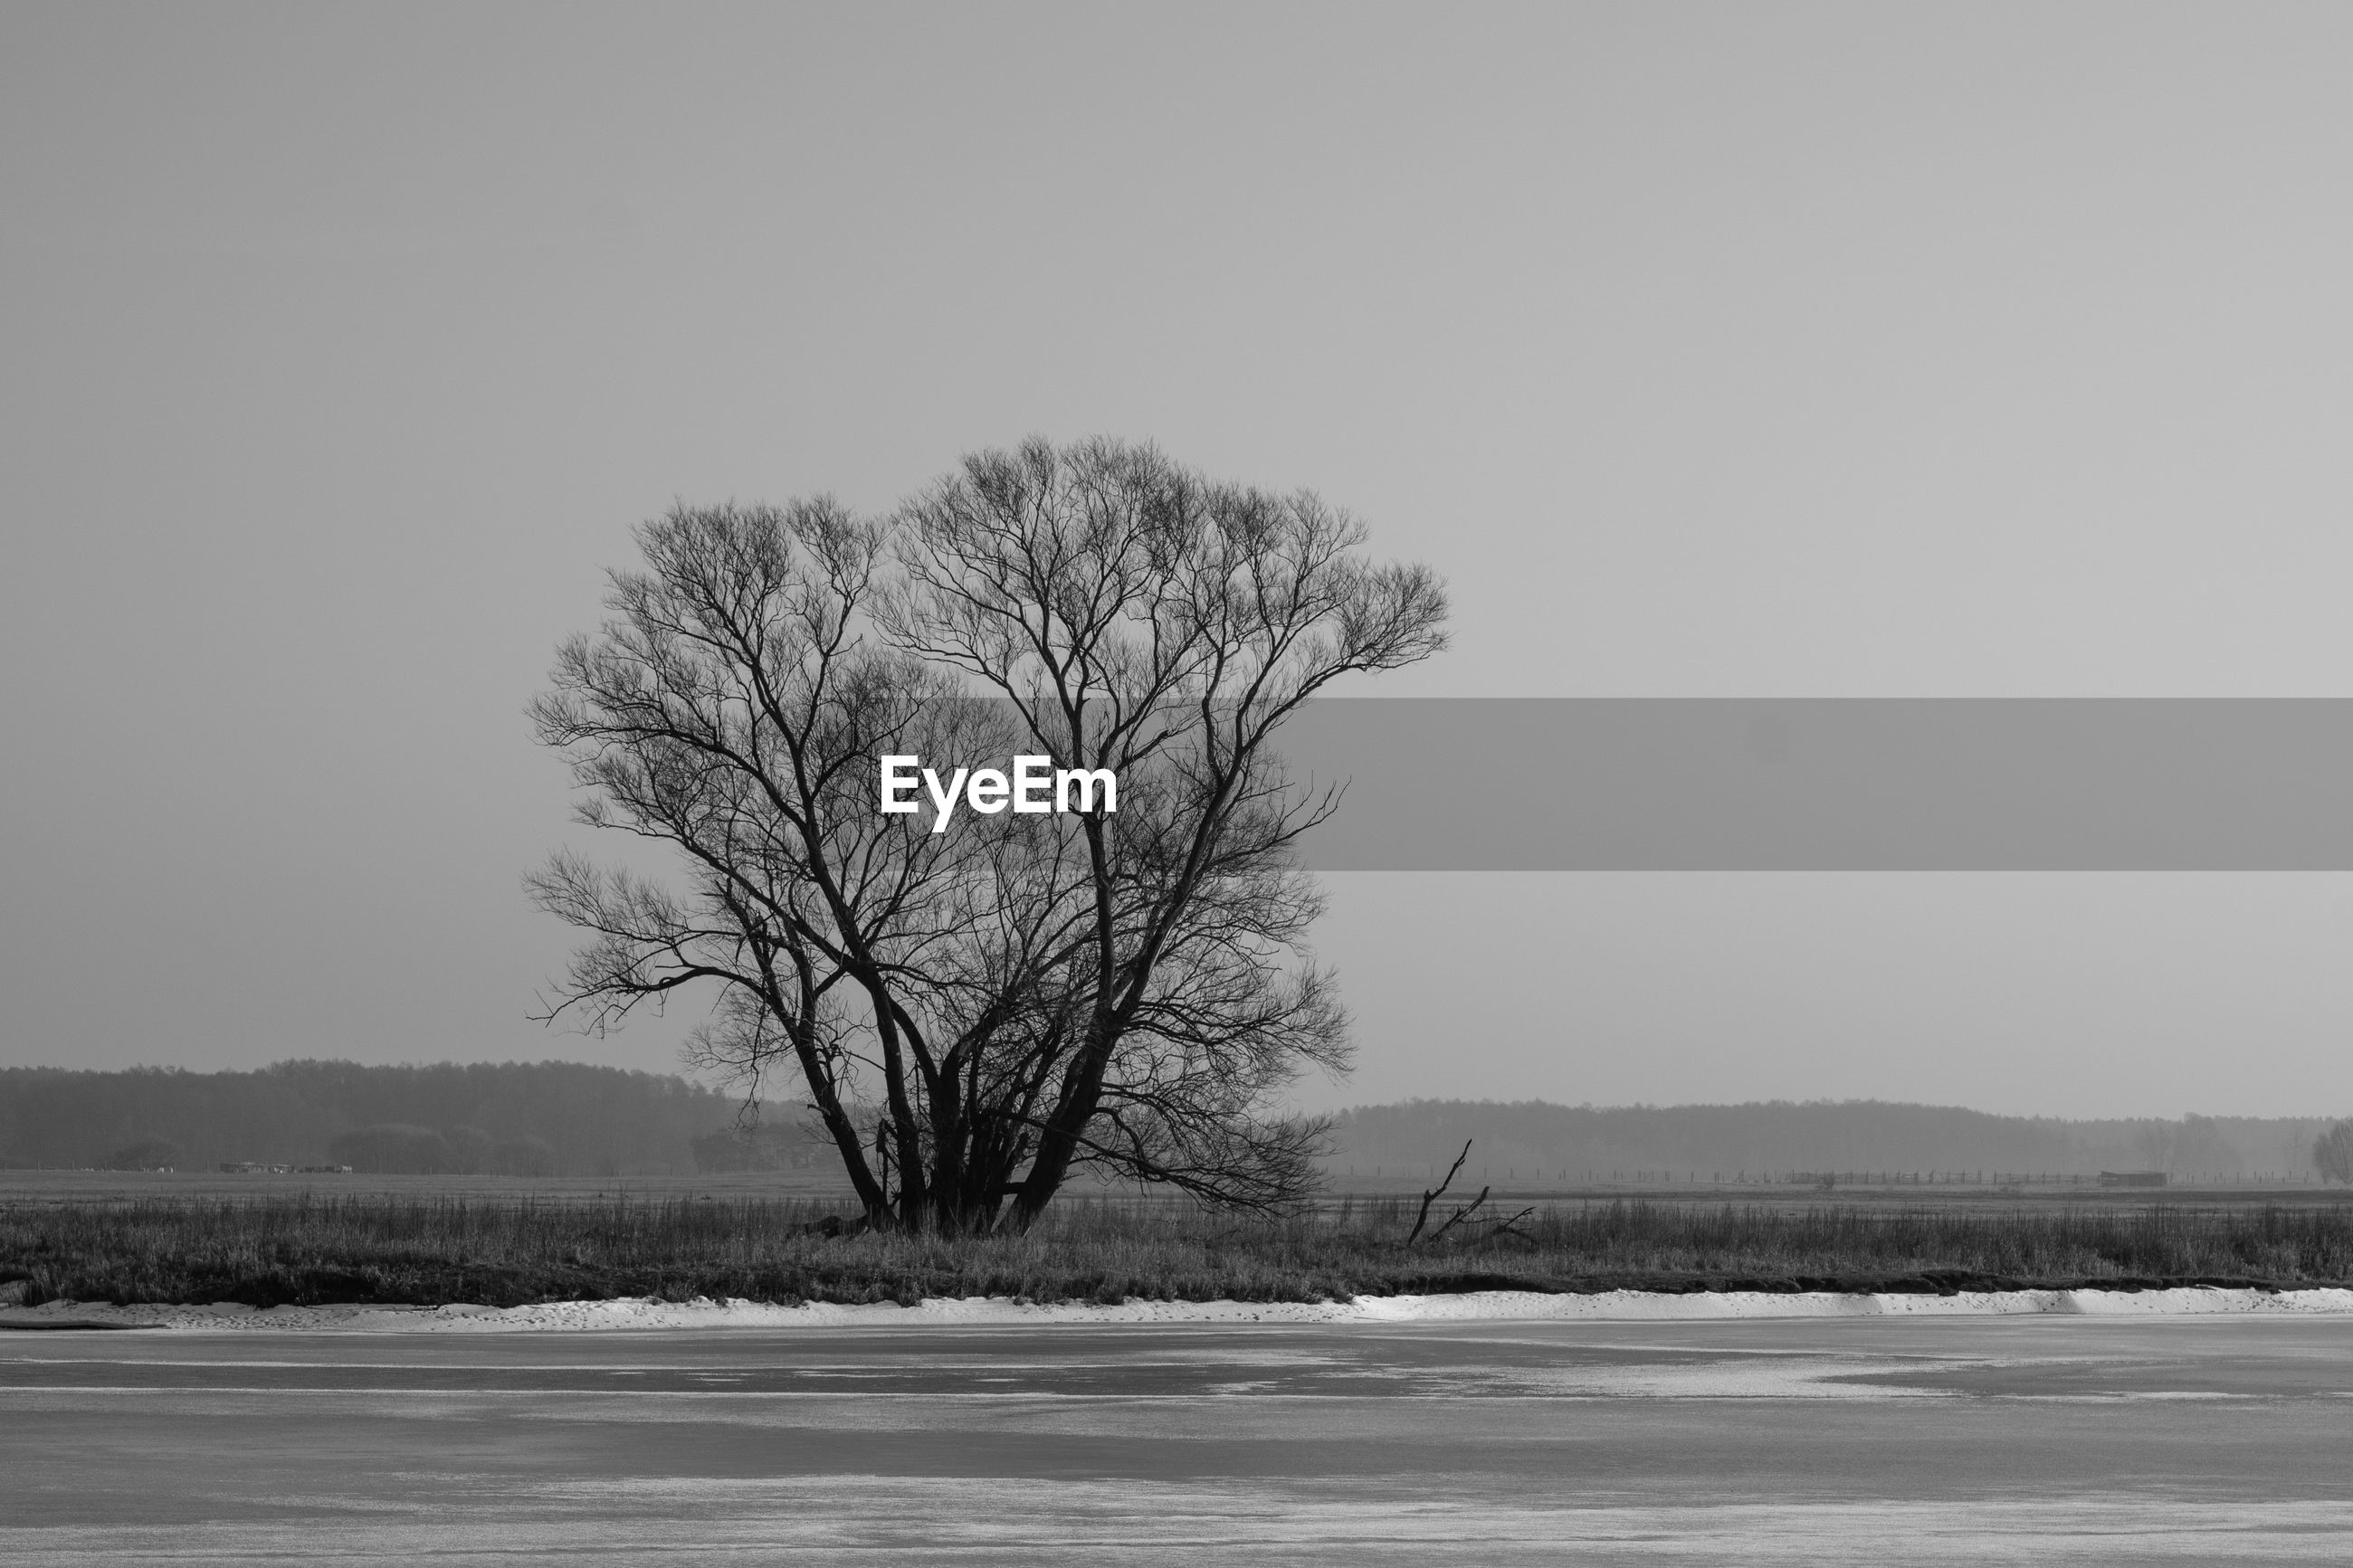 BARE TREE ON FROZEN LANDSCAPE AGAINST CLEAR SKY